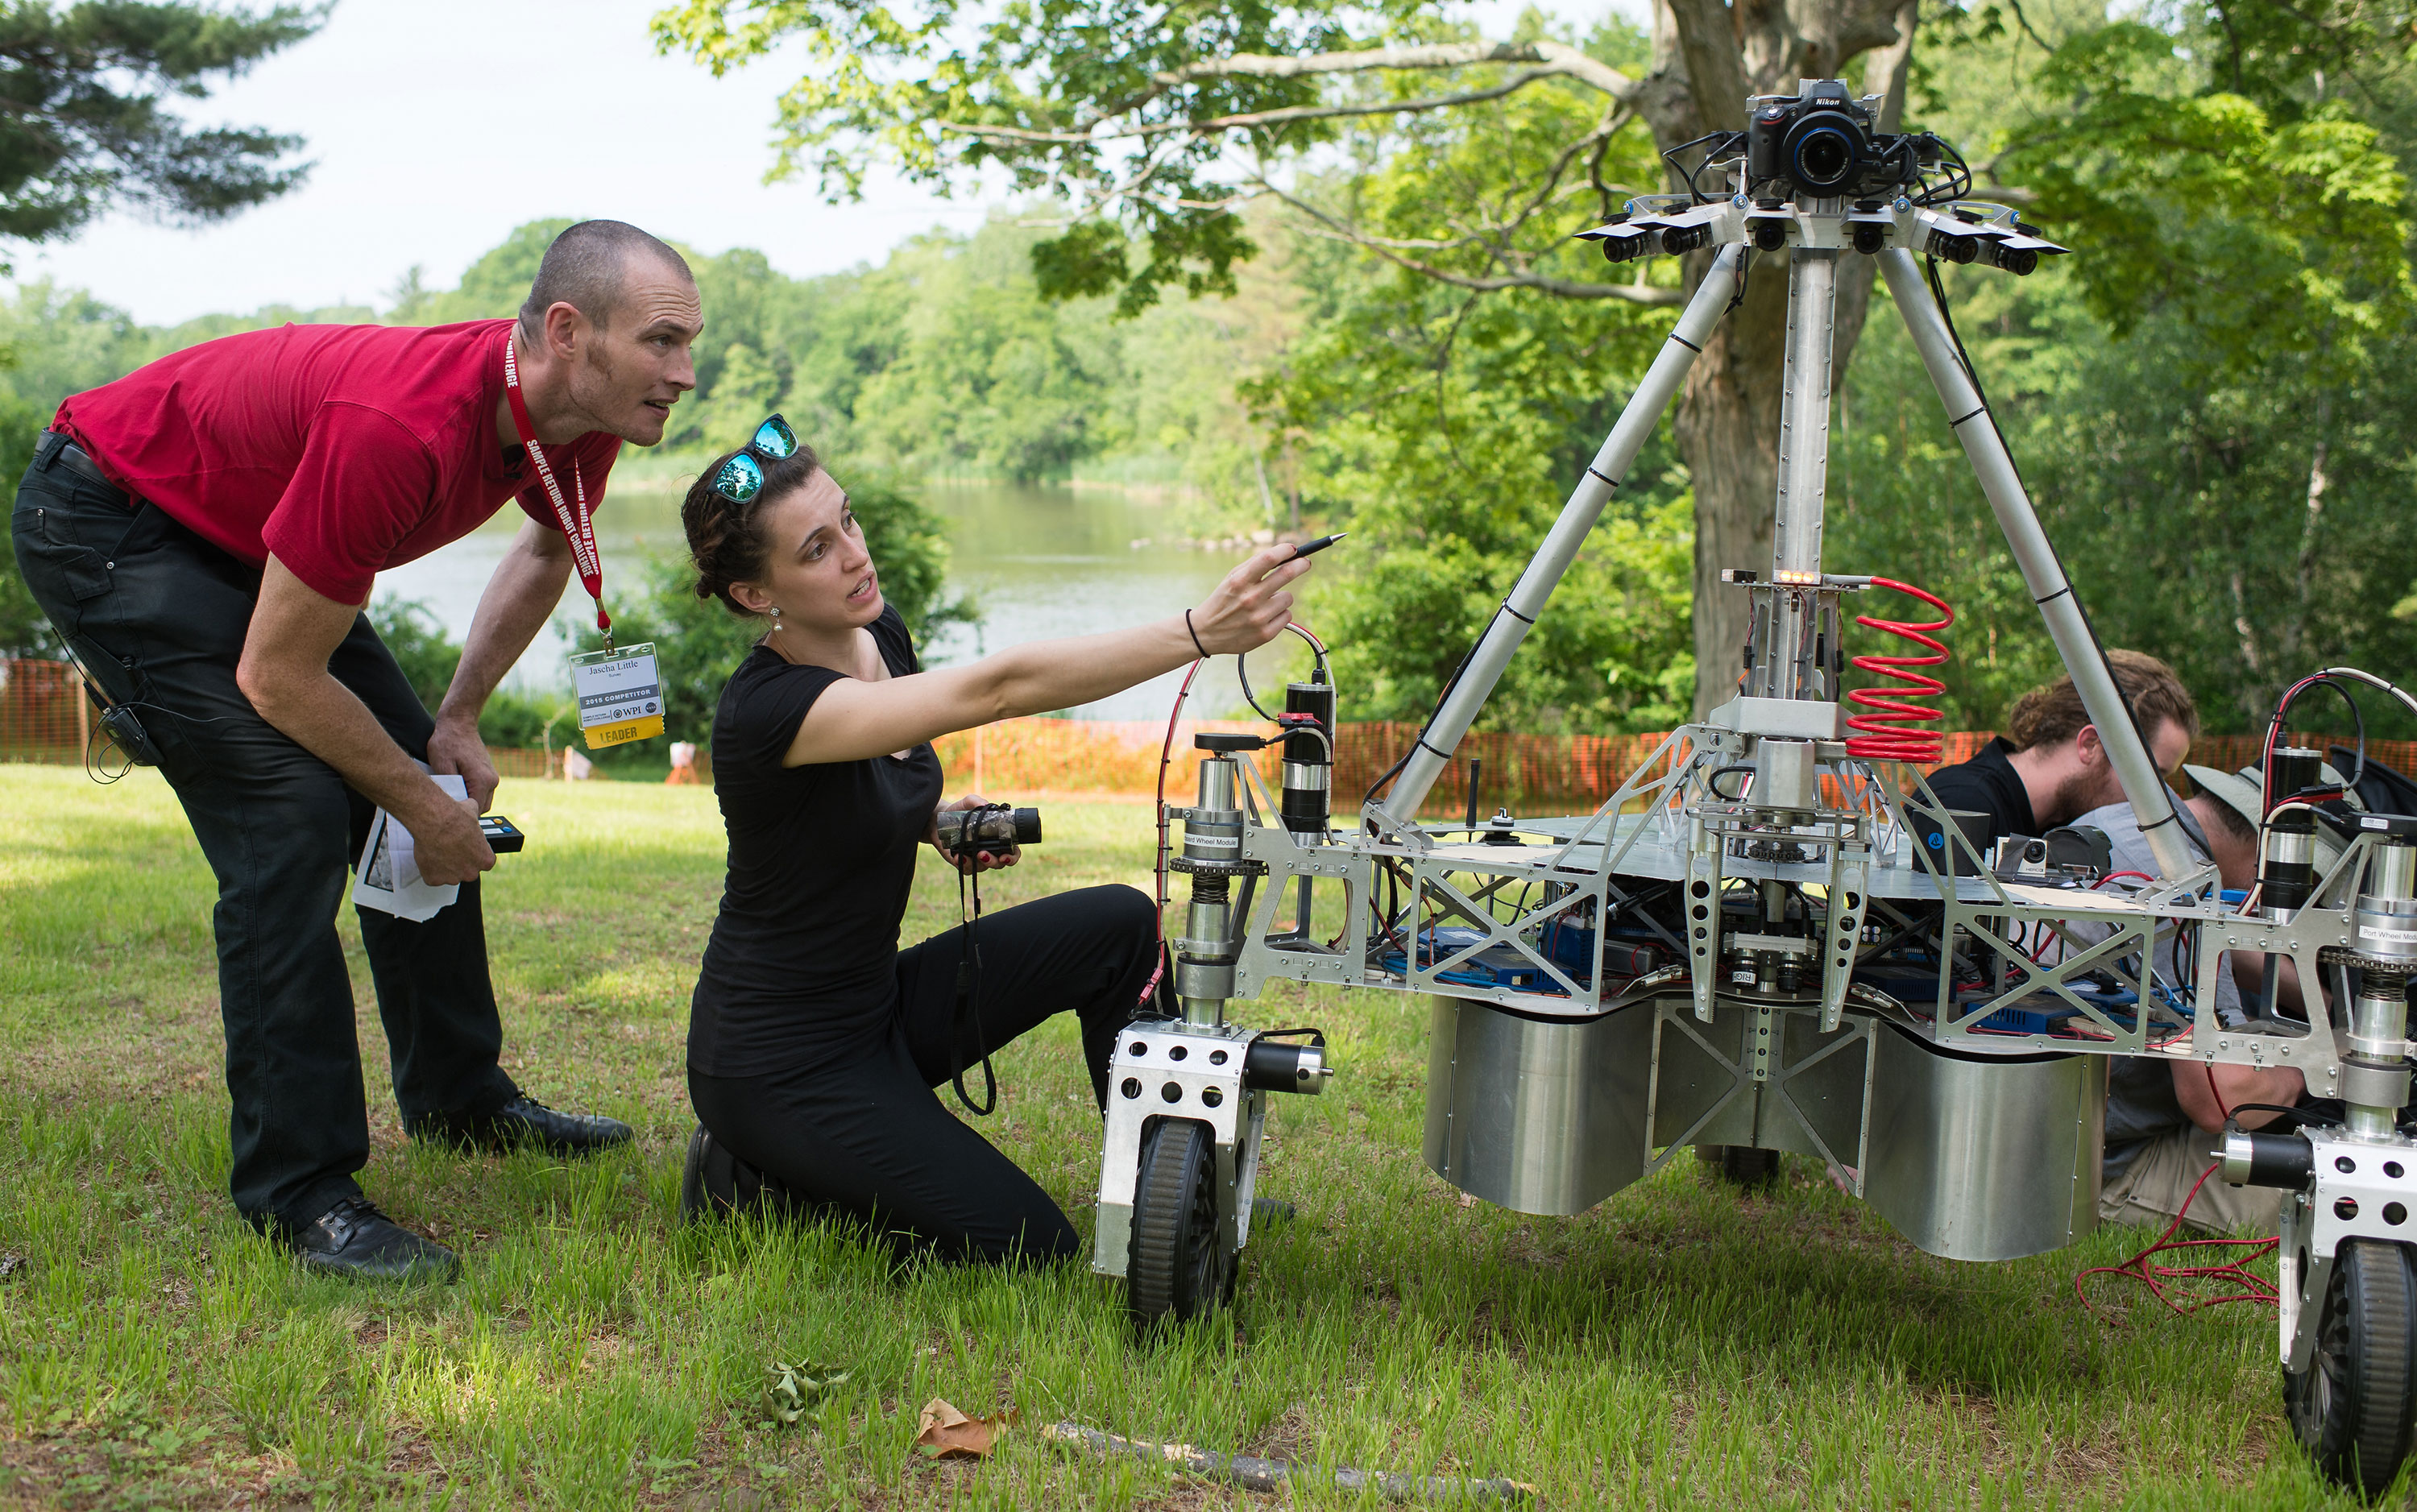 Jascha Little, left, and Zoe Stephenson of team Survey are seen with their robot during a communications update period during their attempt at the level two challenge at the 2015 Sample Return Robot Challenge. Credit: NASA/Joel Kowsky